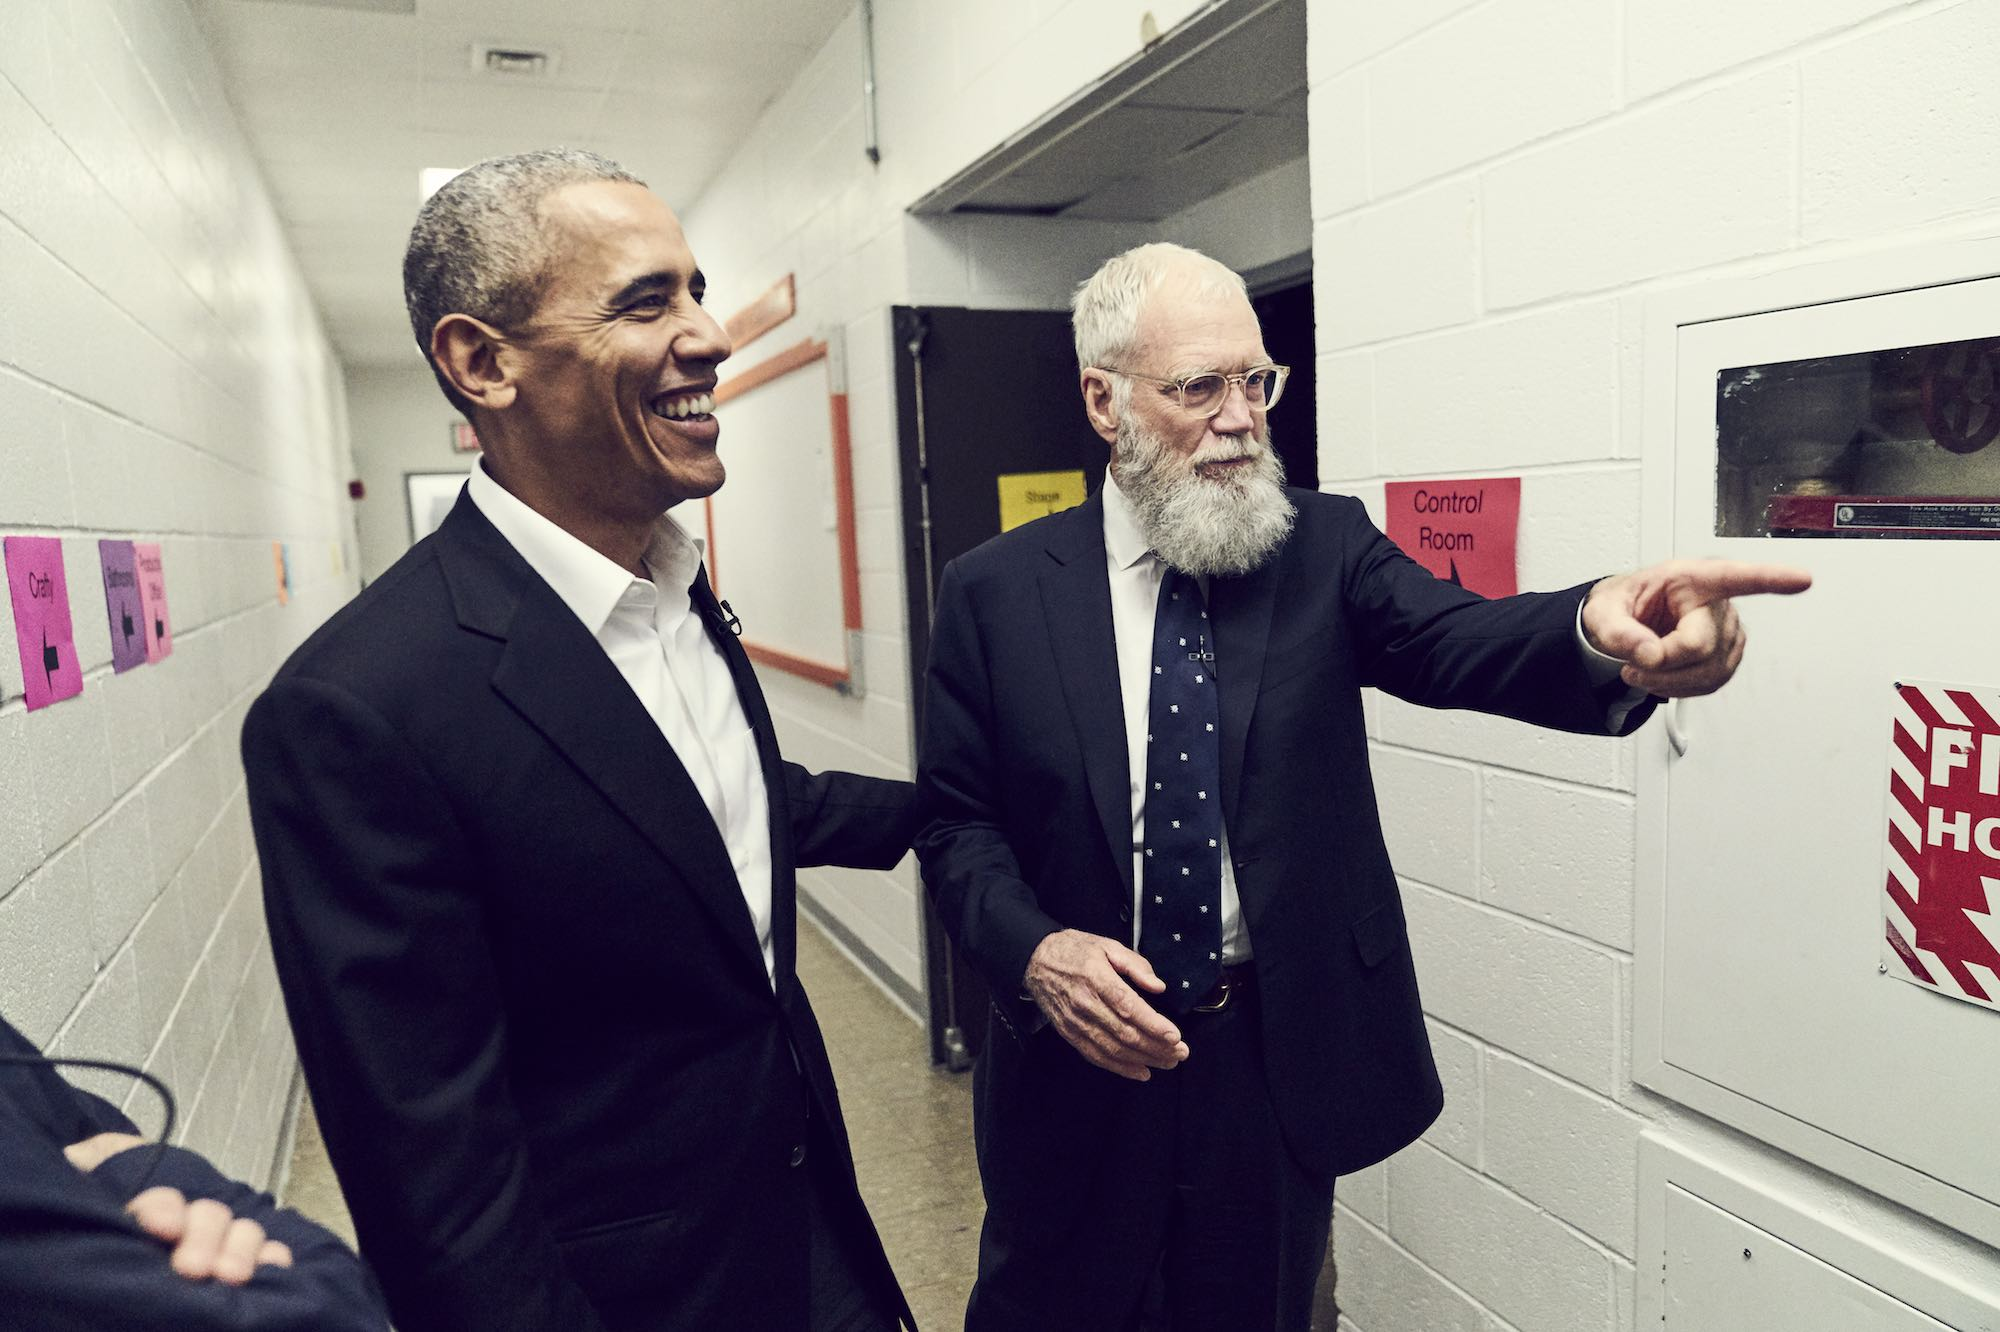 David Letterman's new Netflix talk show has a pretty incredible first guest